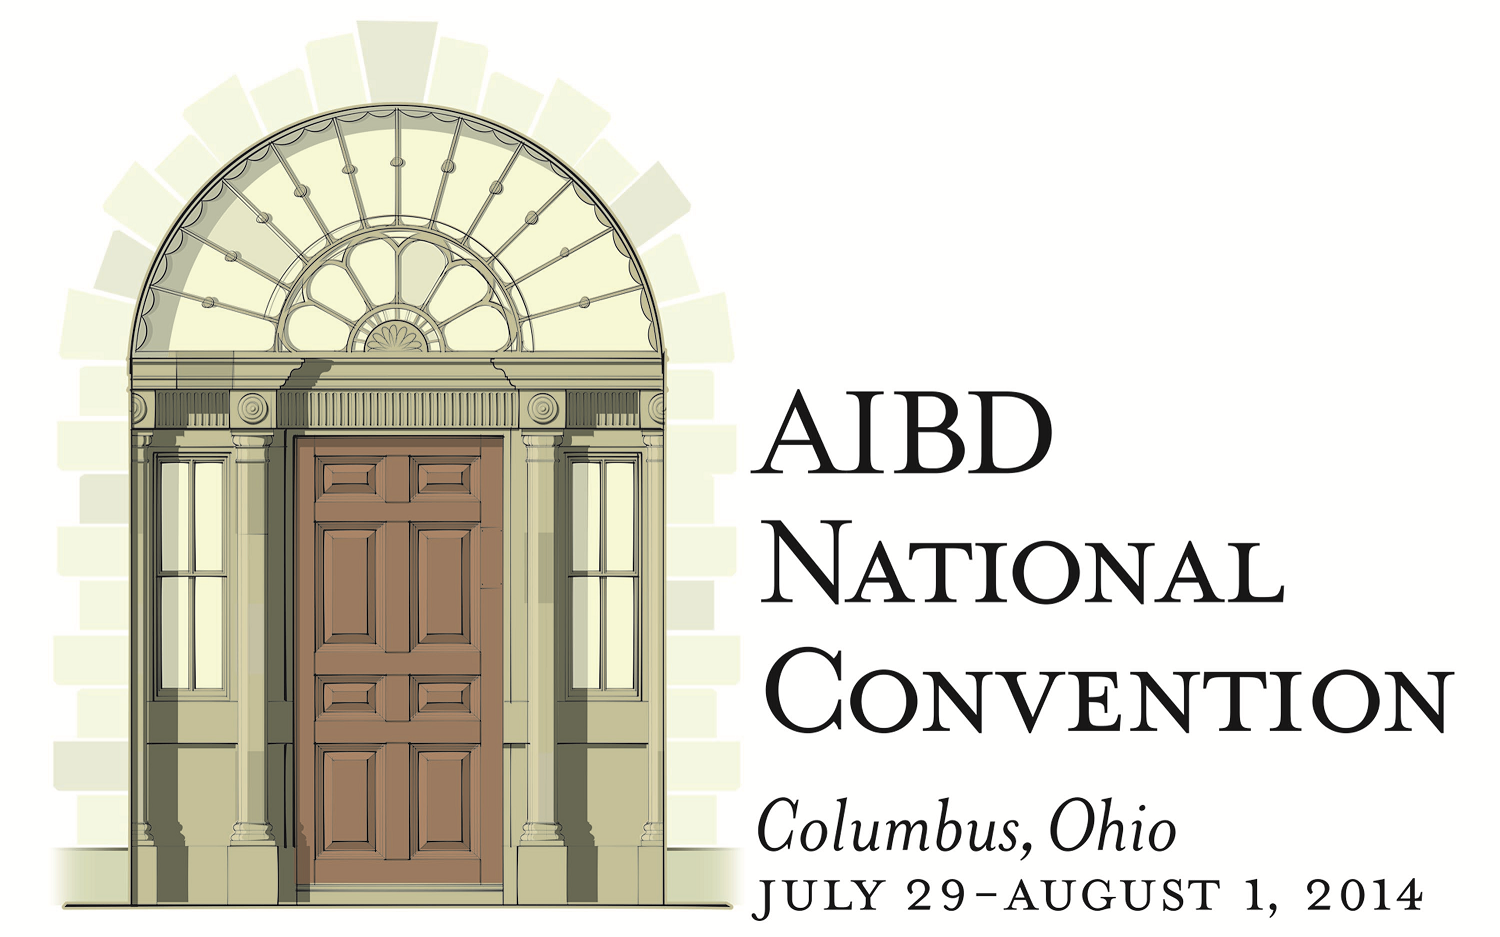 AIBD National Convention